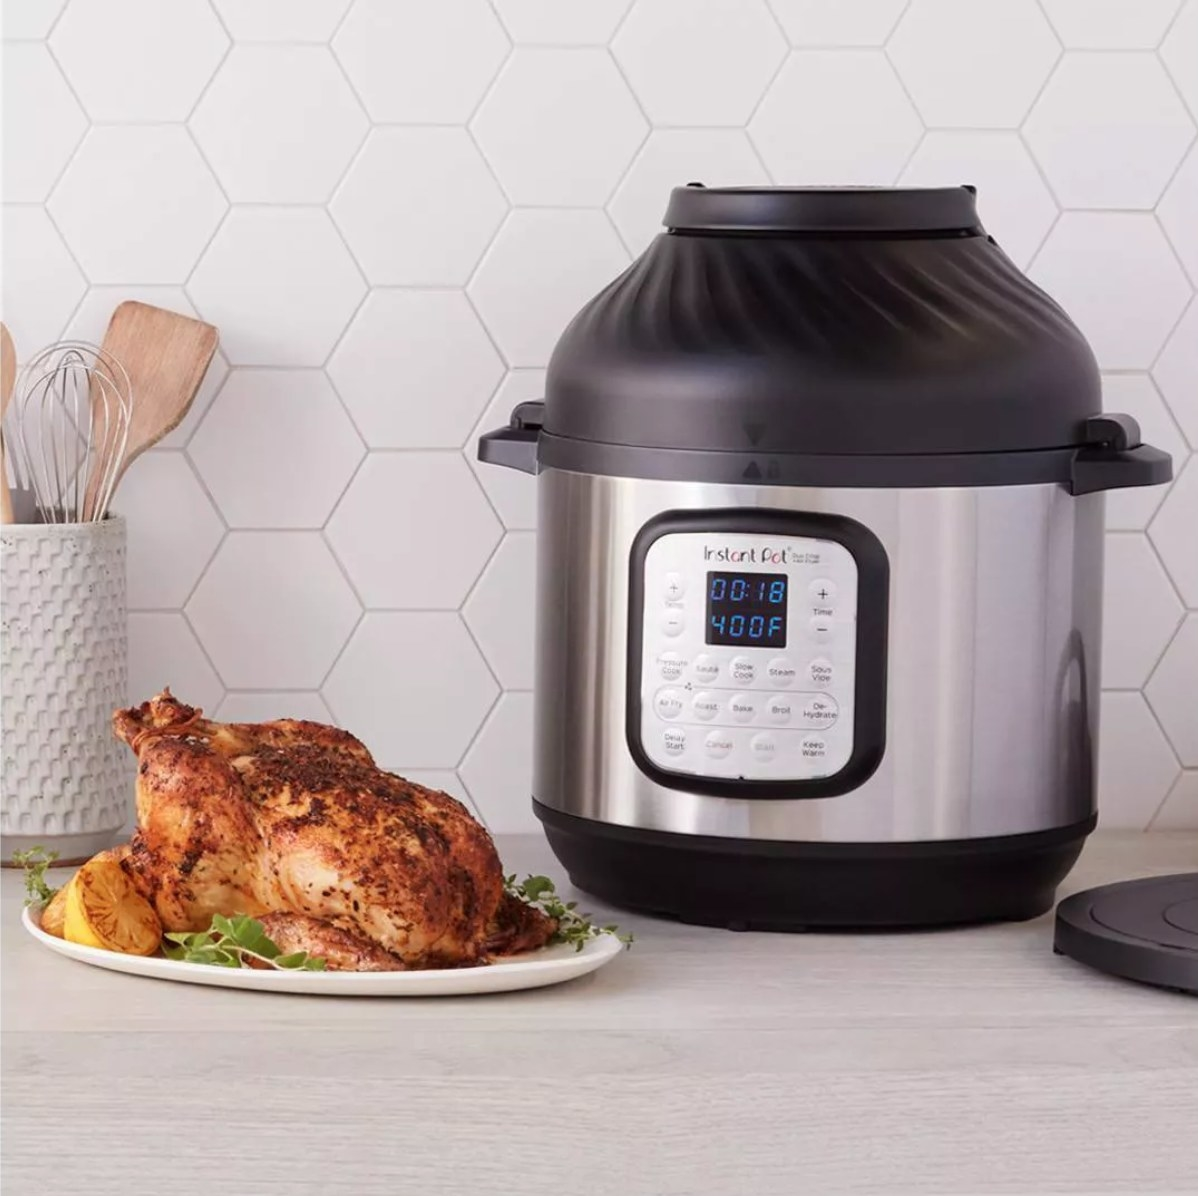 The eight quart instant pot next to a full chicken